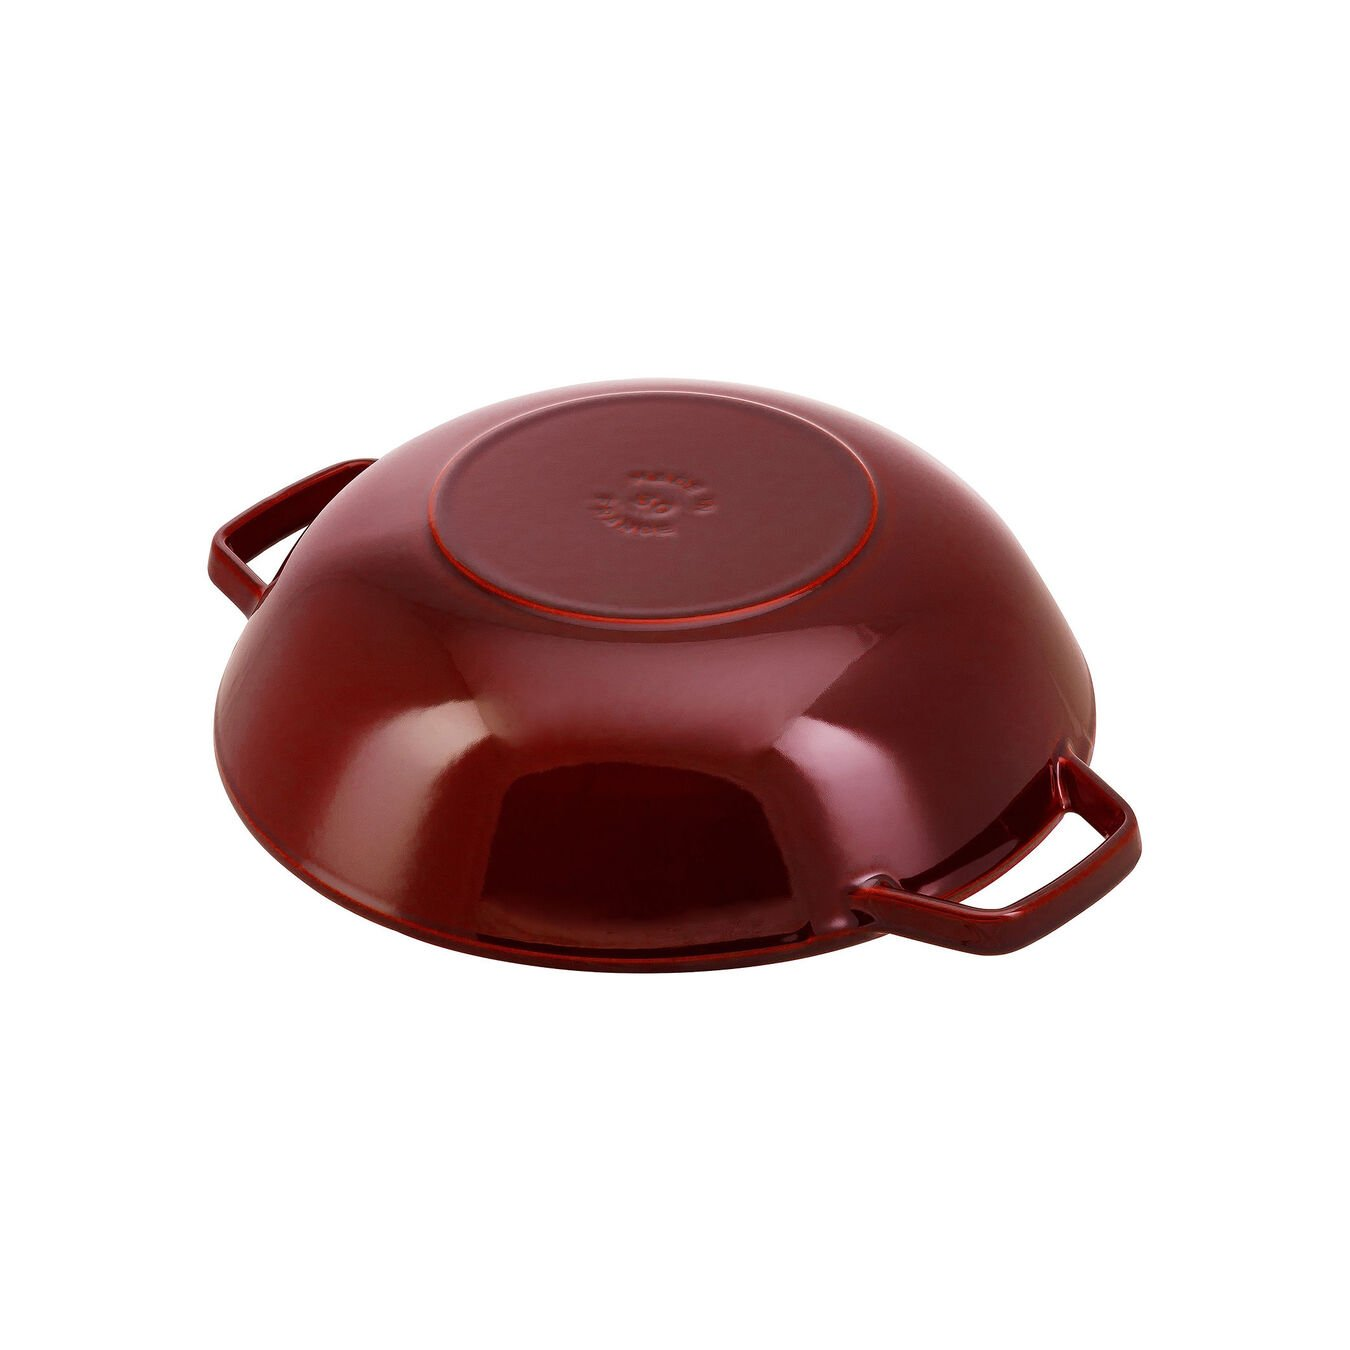 30 cm Cast iron Wok with glass lid, Grenadine-Red,,large 3